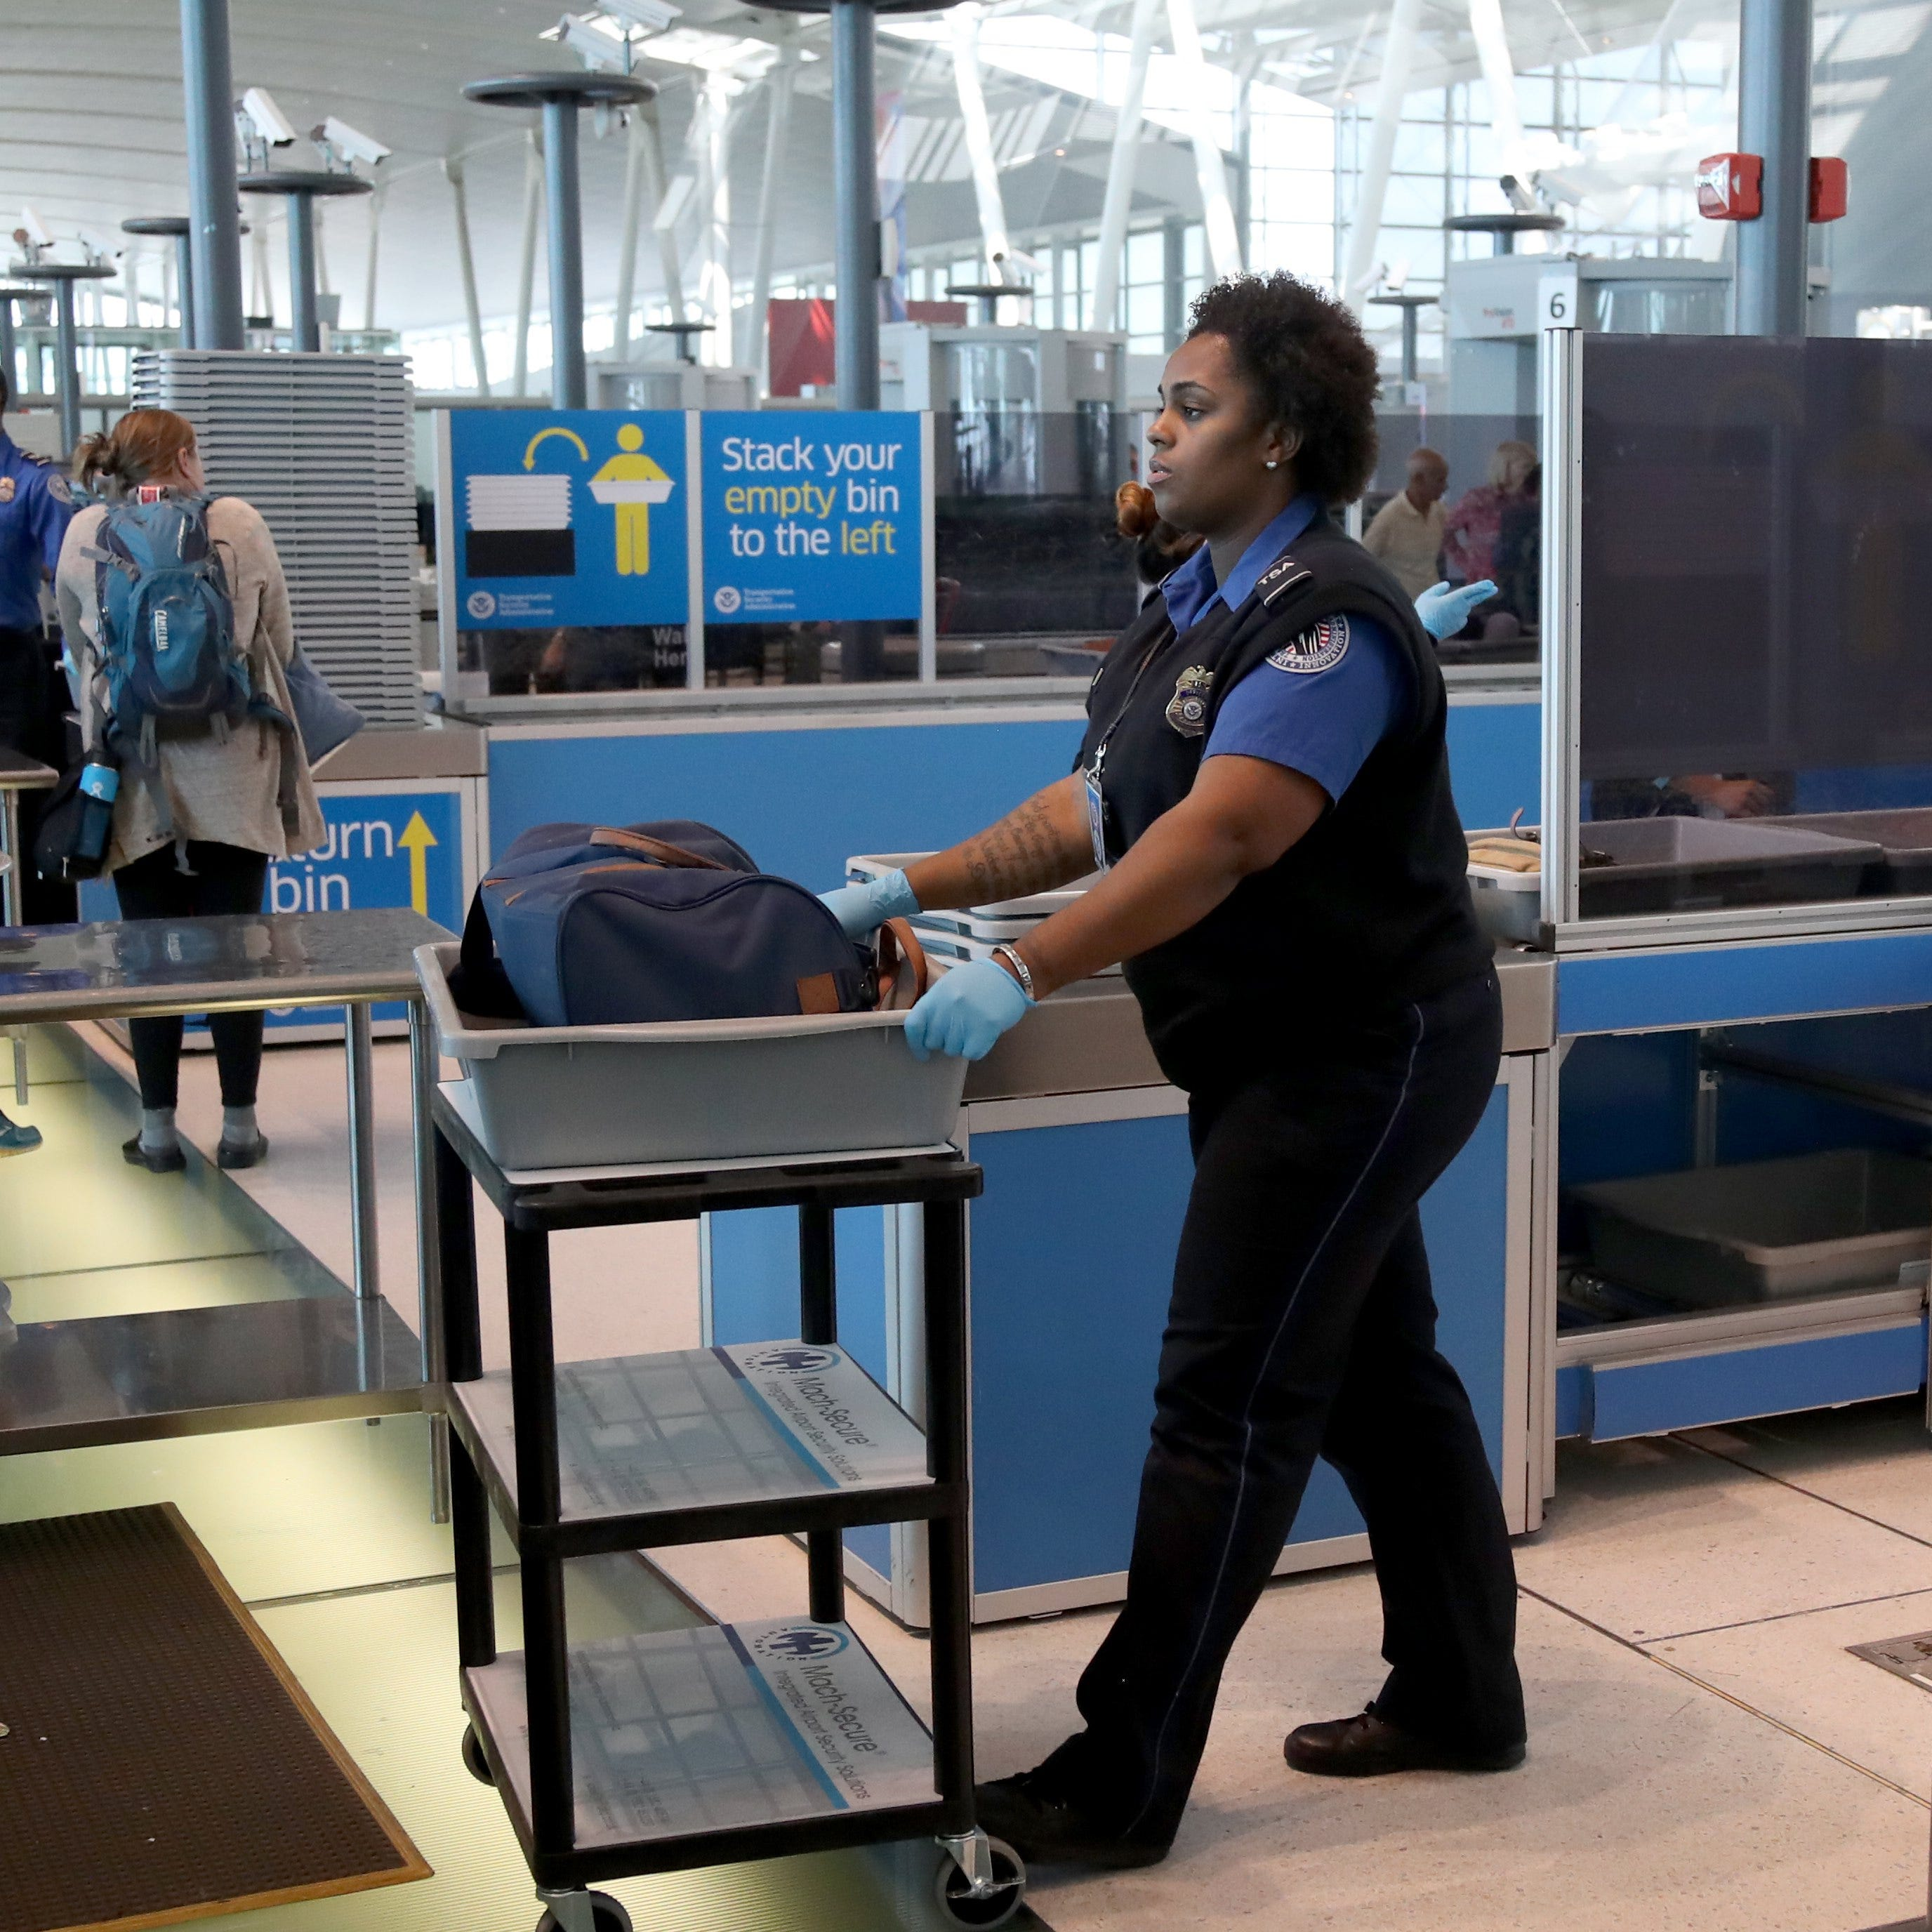 An employee of the Transportation Security Administration (TSA) handles a bag inside a plastic tray for secondary screening at a checkpoint at John F. Kennedy International Airport (JFK) in Queens, New York.